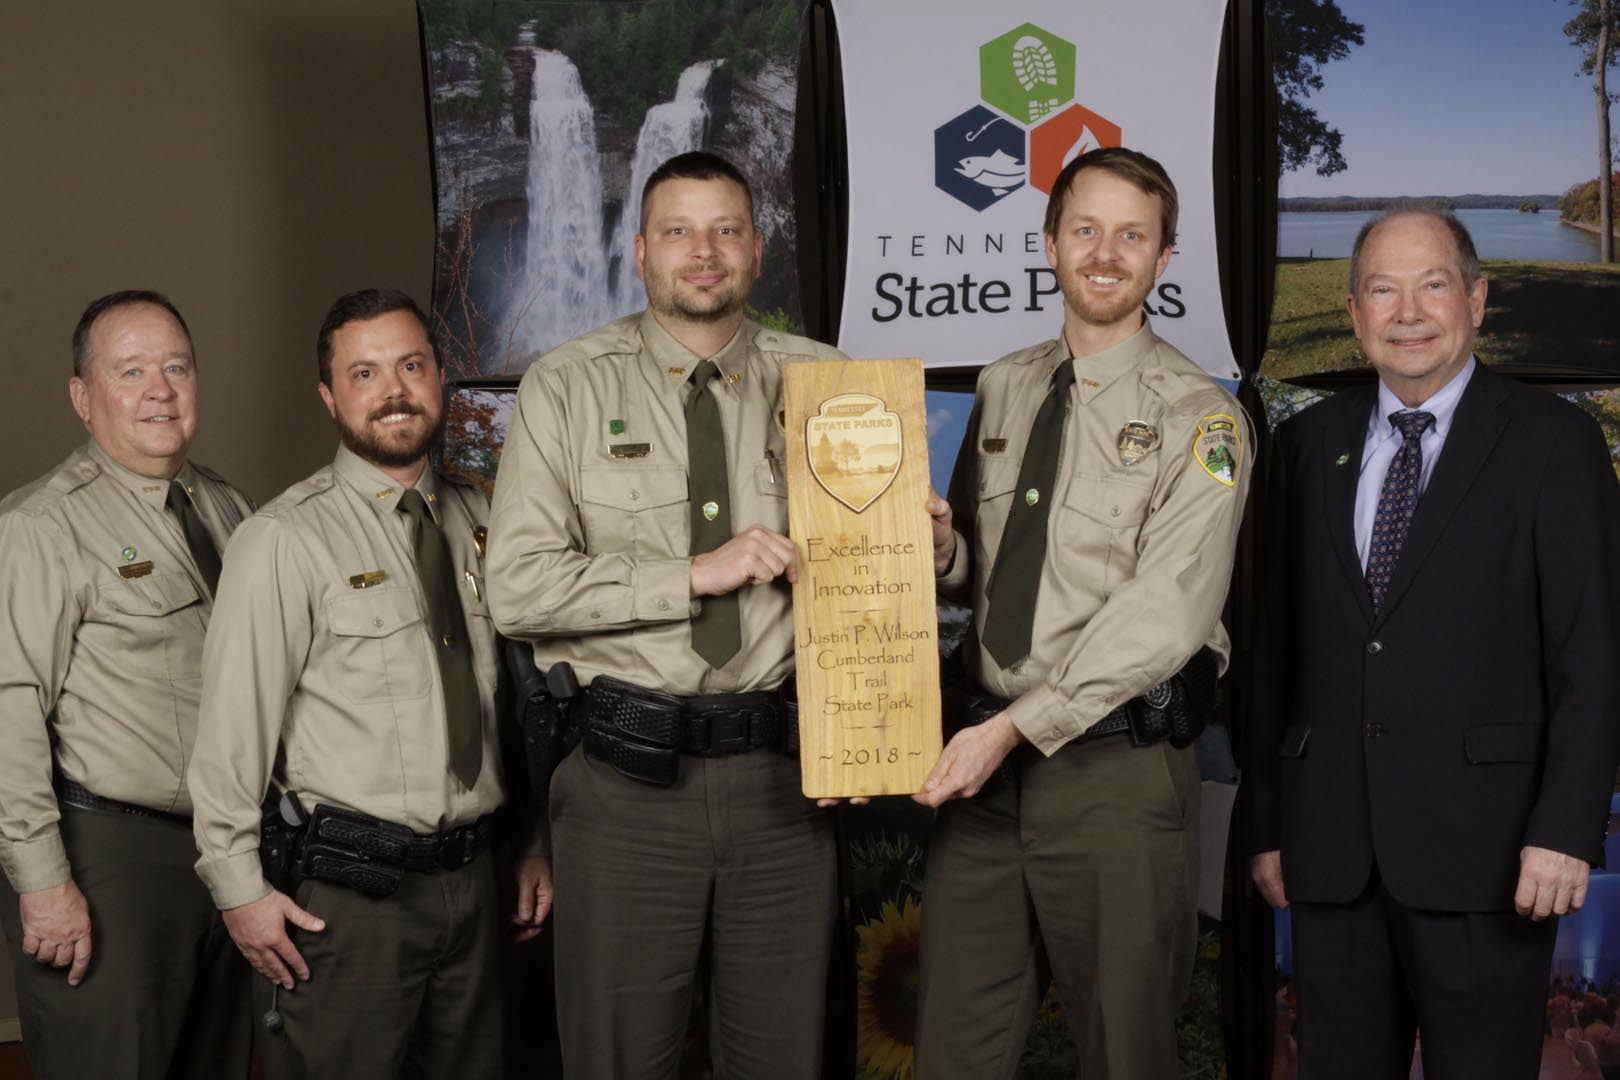 JUSTIN P. WILSON CUMBERLAND TRAIL STATE PARK HONORED FOR INNOVATION